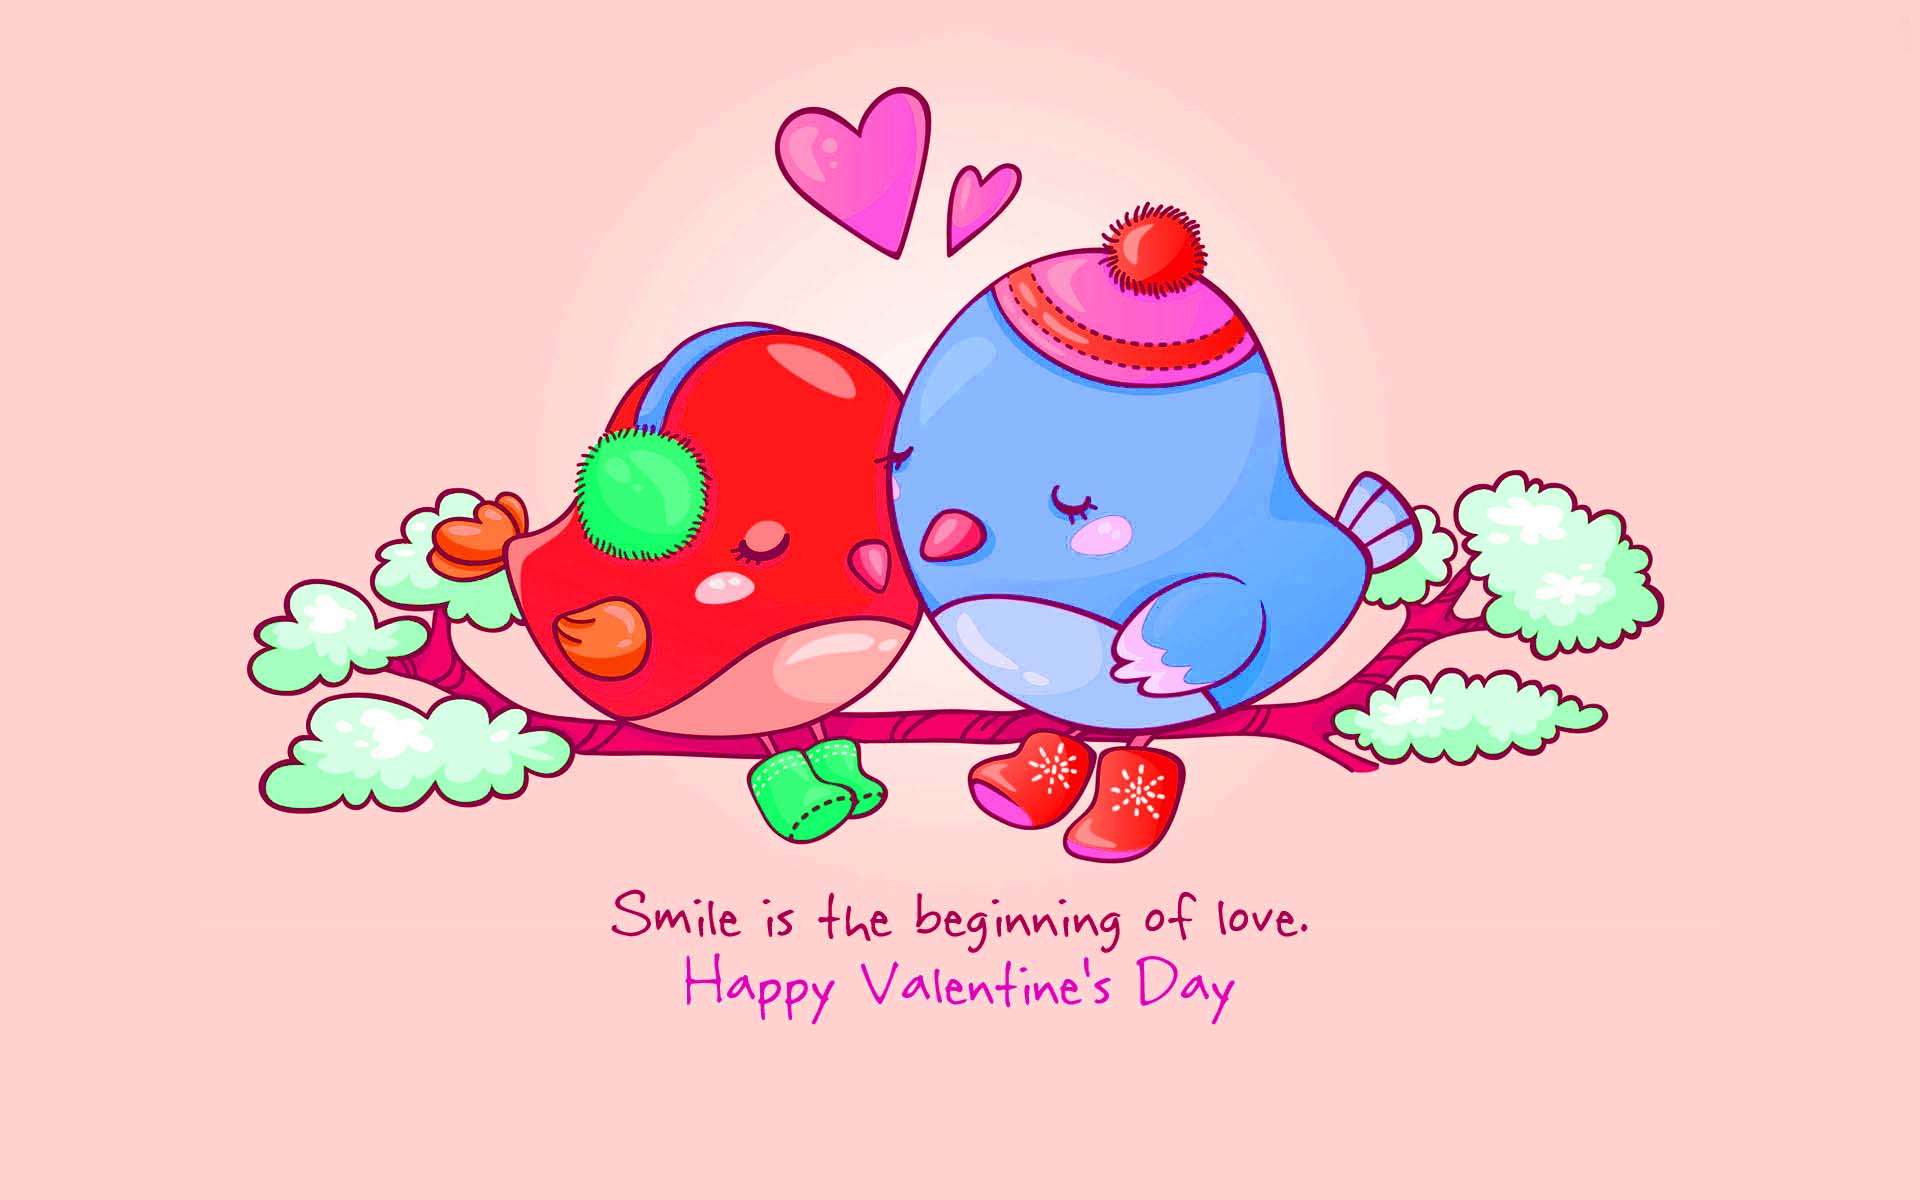 Love Valentine Day Greetings With Cute Love Birds 1920x1200